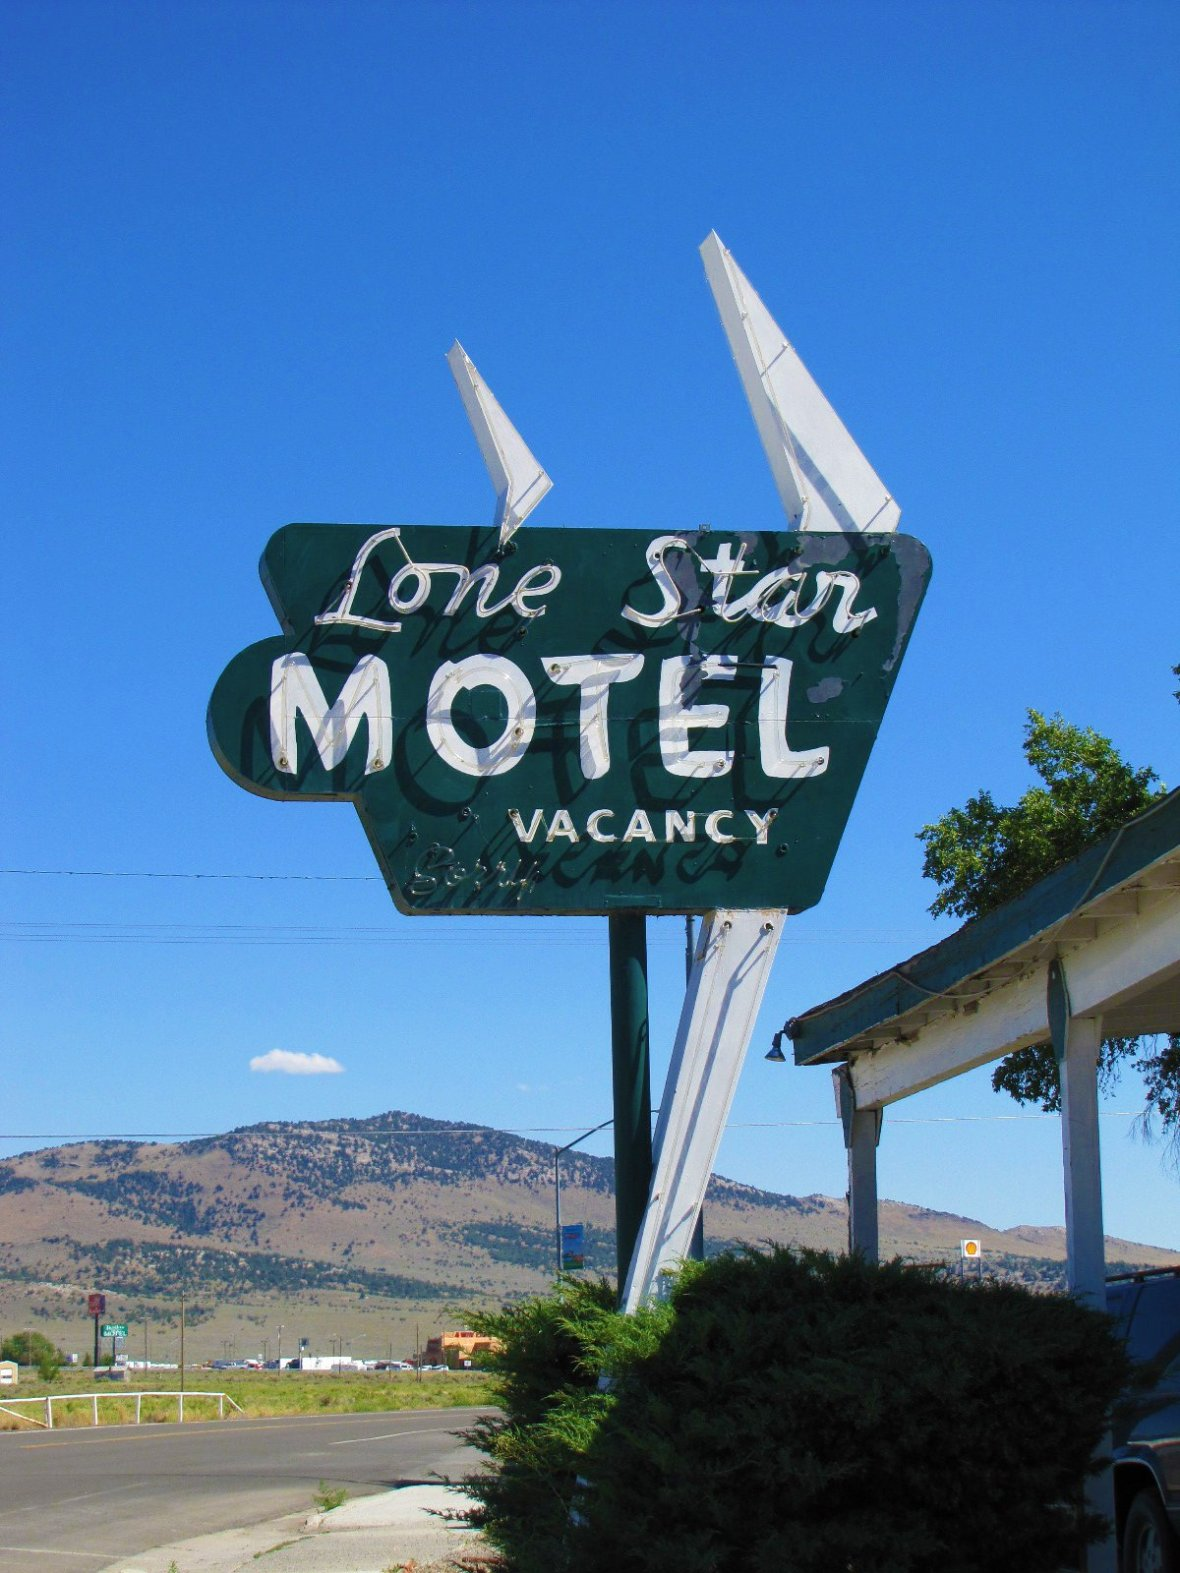 Lone Star Motel - 676 6th Street, Wells, Nevada U.S.A. - August 3, 2010